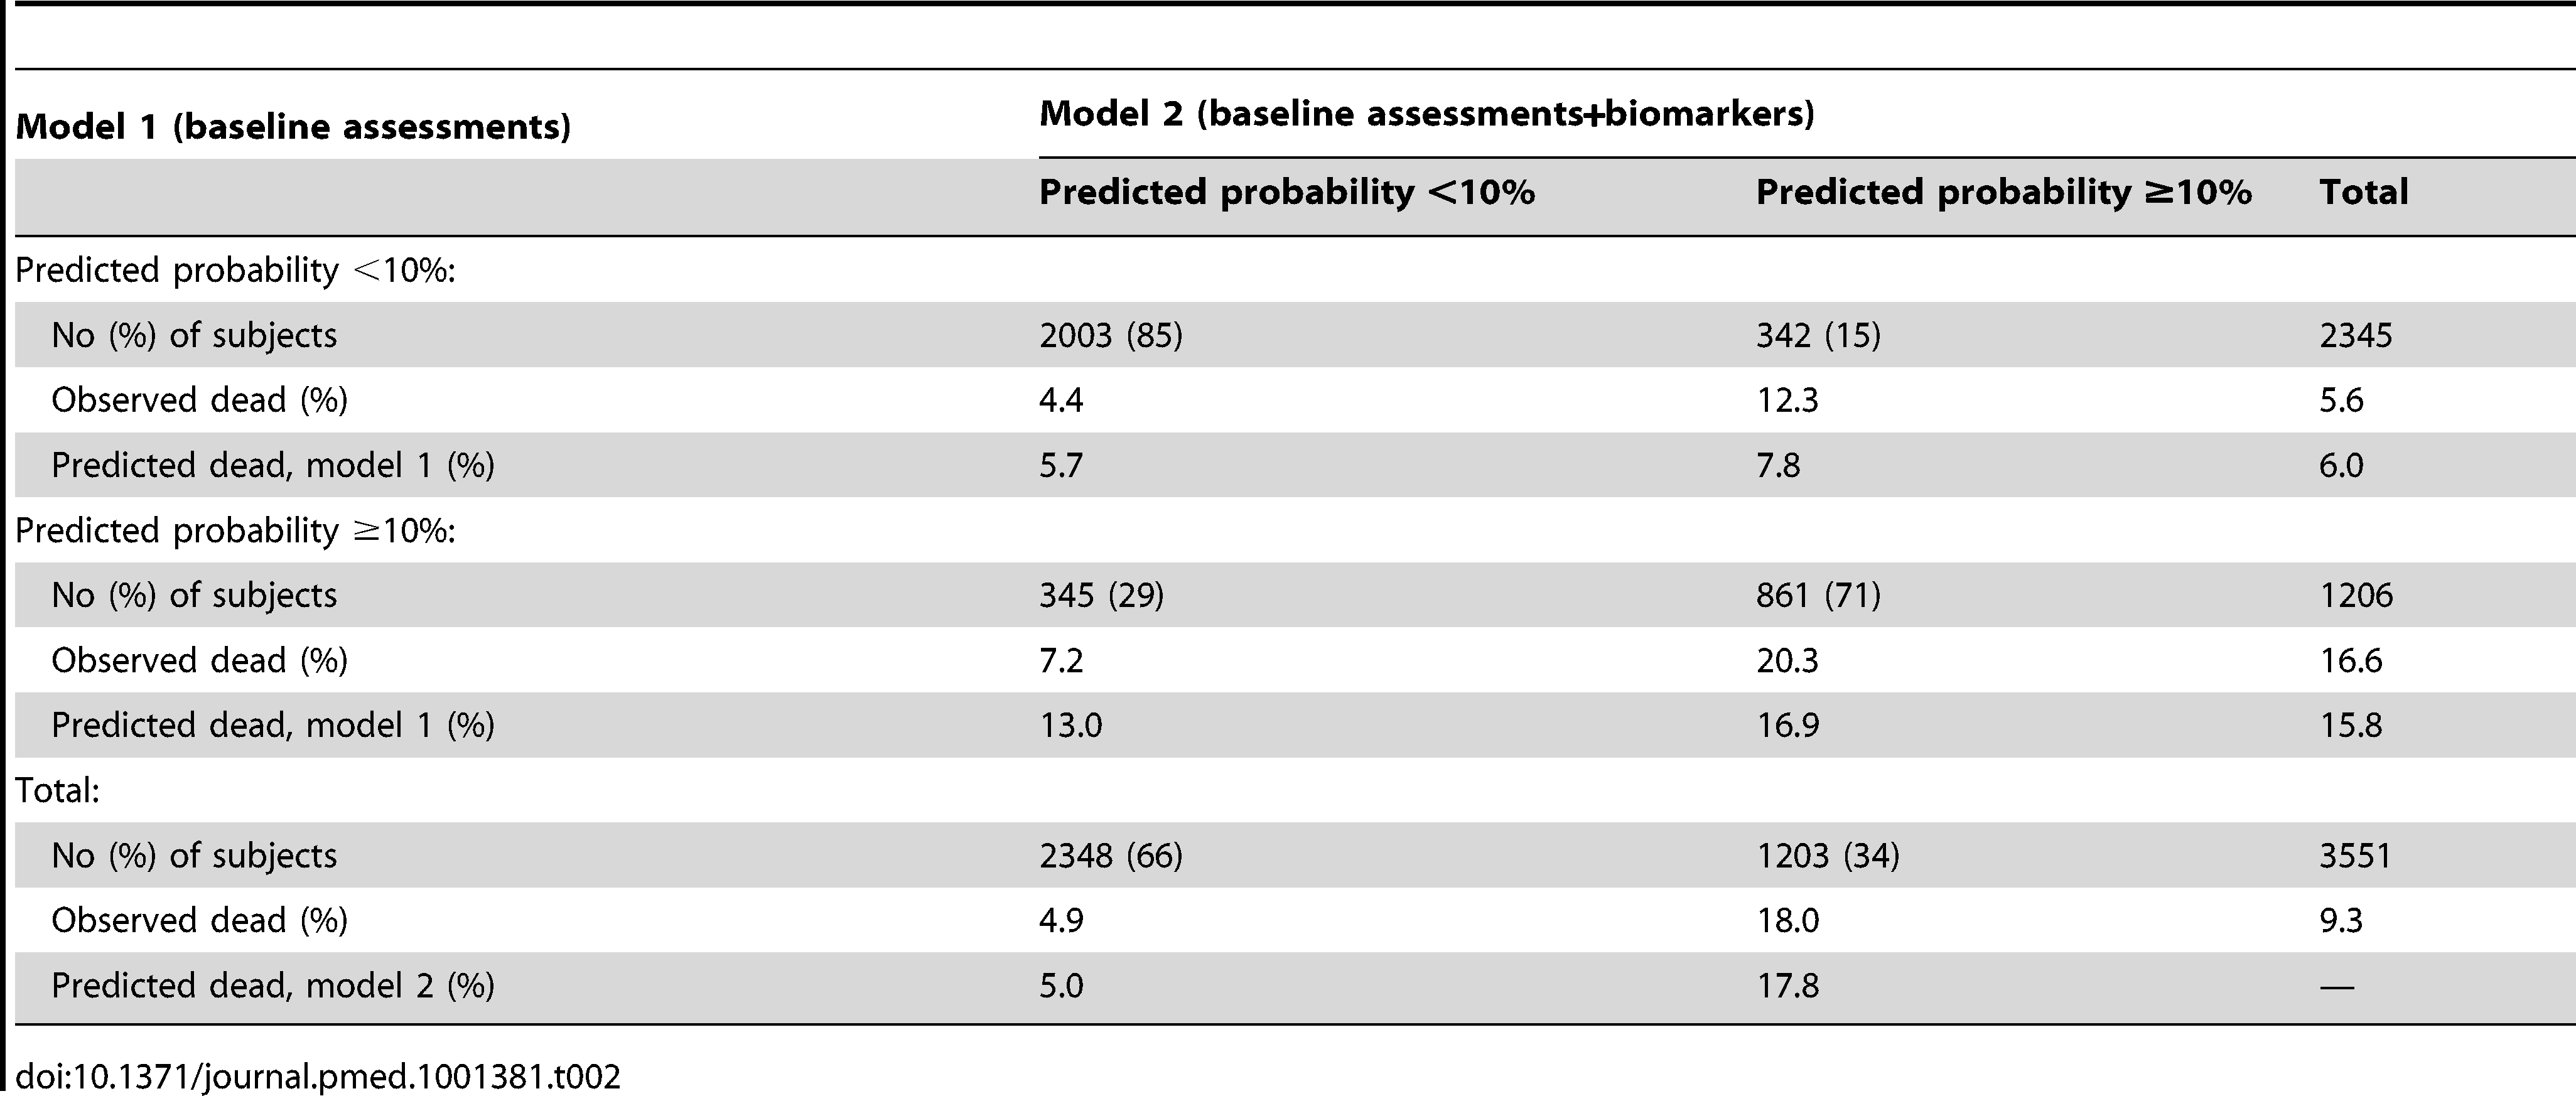 "Reclassification of patients into prognostic groups by adding two biomarkers (brain natriuretic peptide and serum troponin T) to a prognostic model for patients with heart failure <em class=""ref"">[55]</em>."